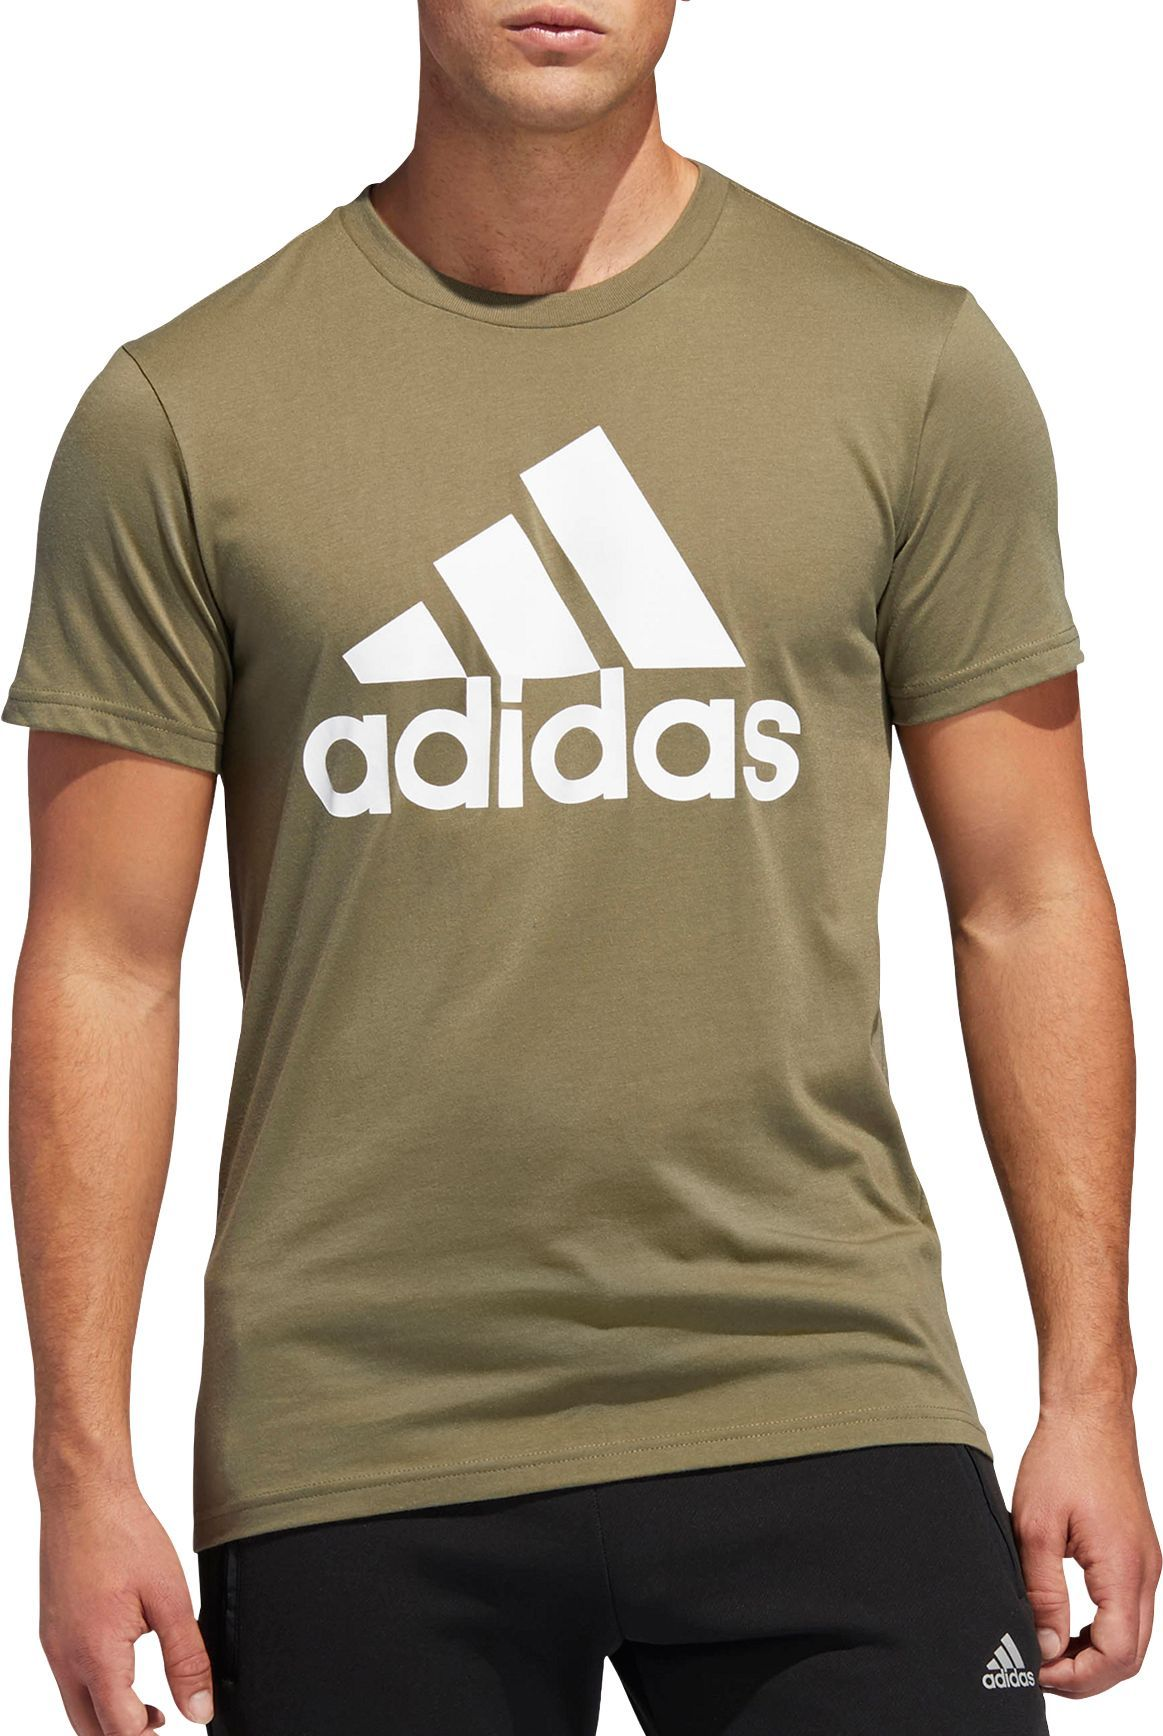 adidas Men's Badge Of Sport Classic T Shirt, Size: Small